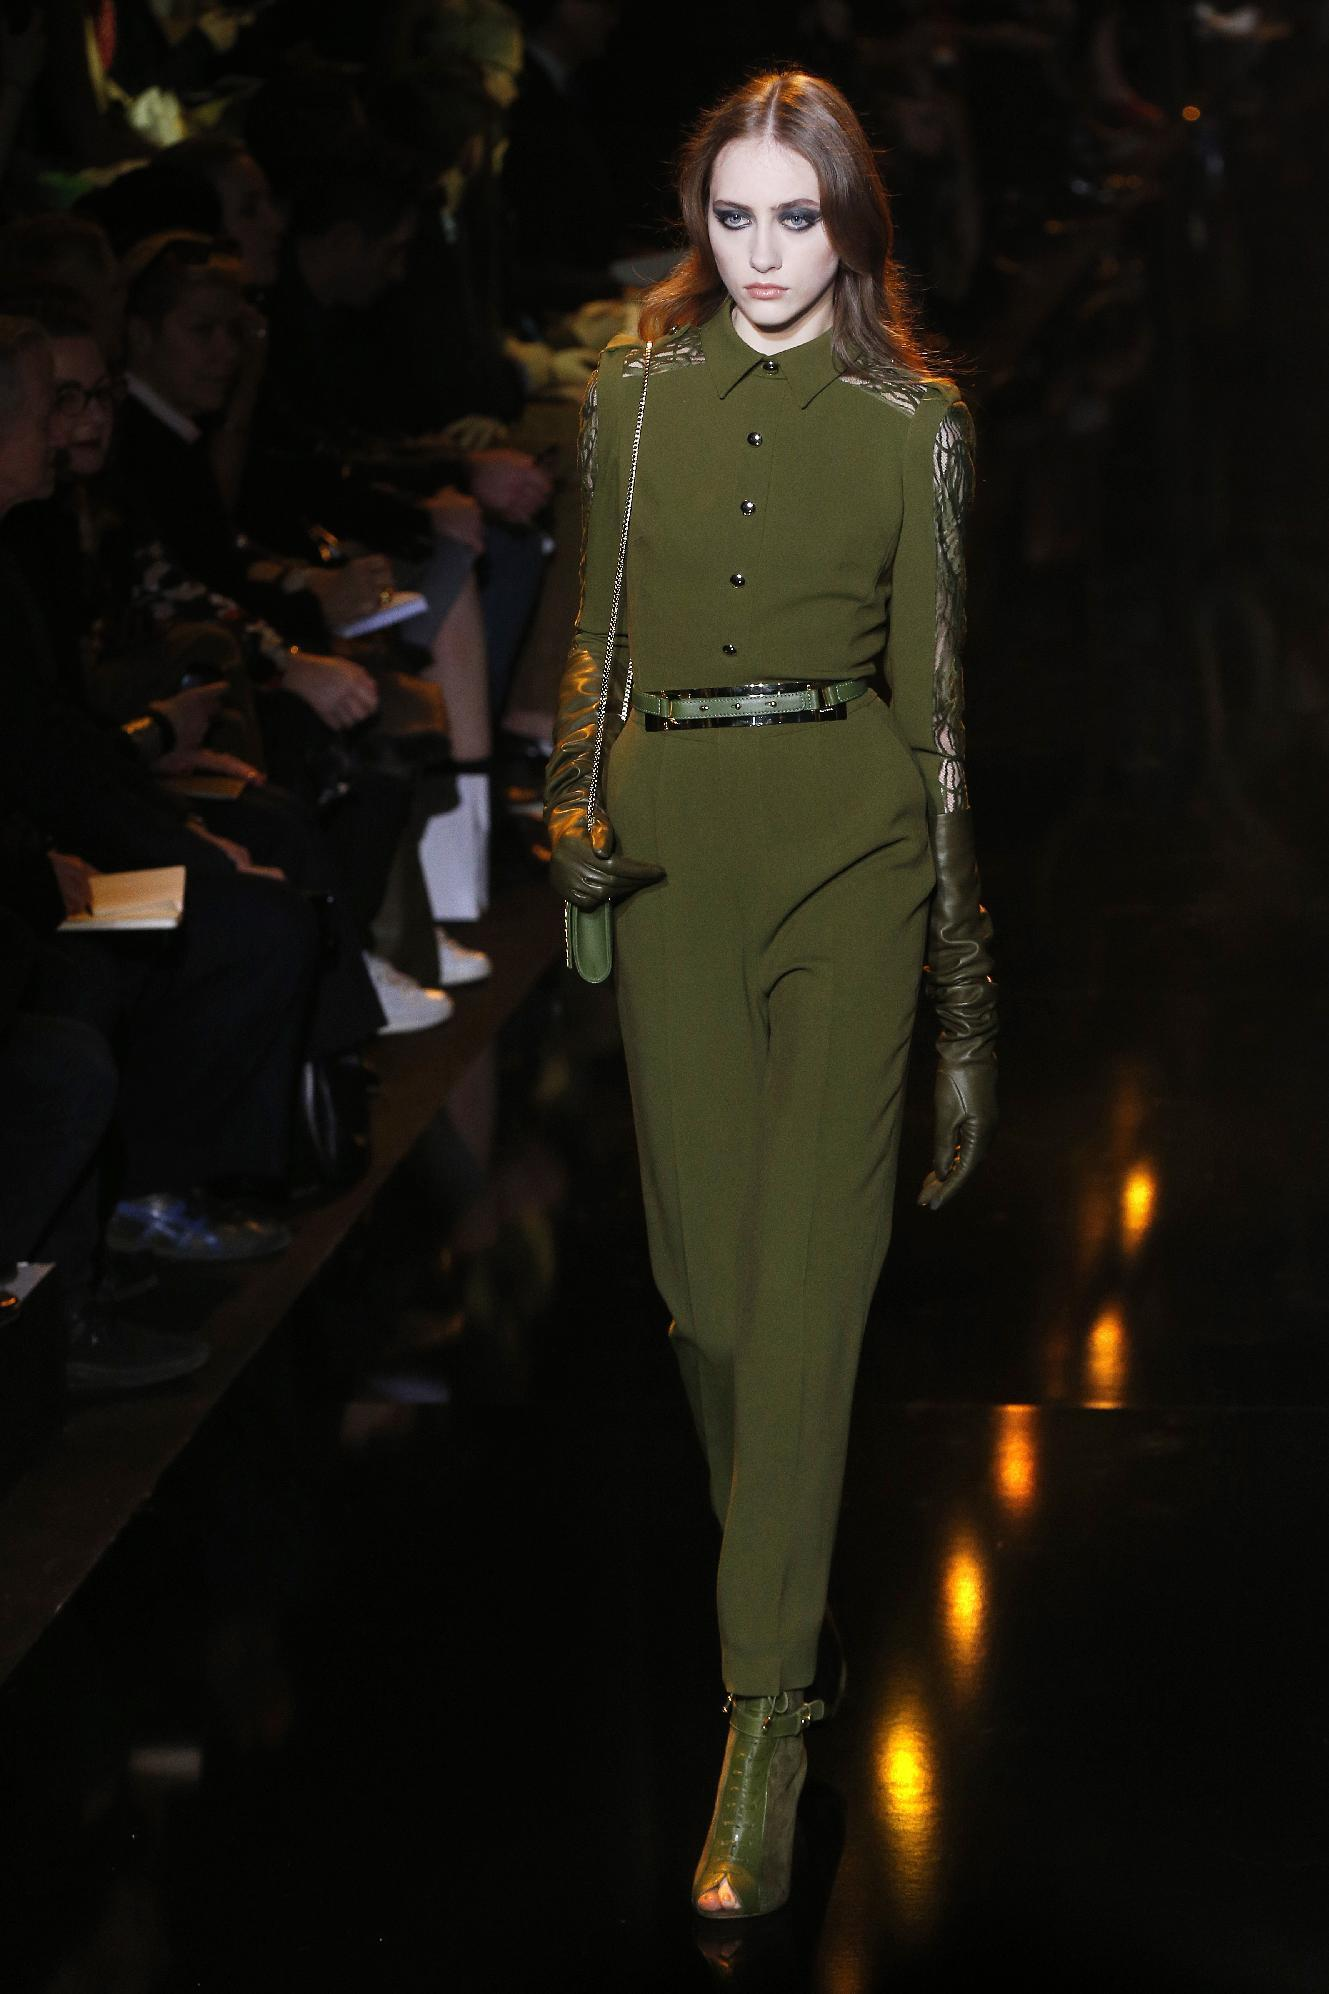 Retro, military and unisex style are the key looks to follow this fall